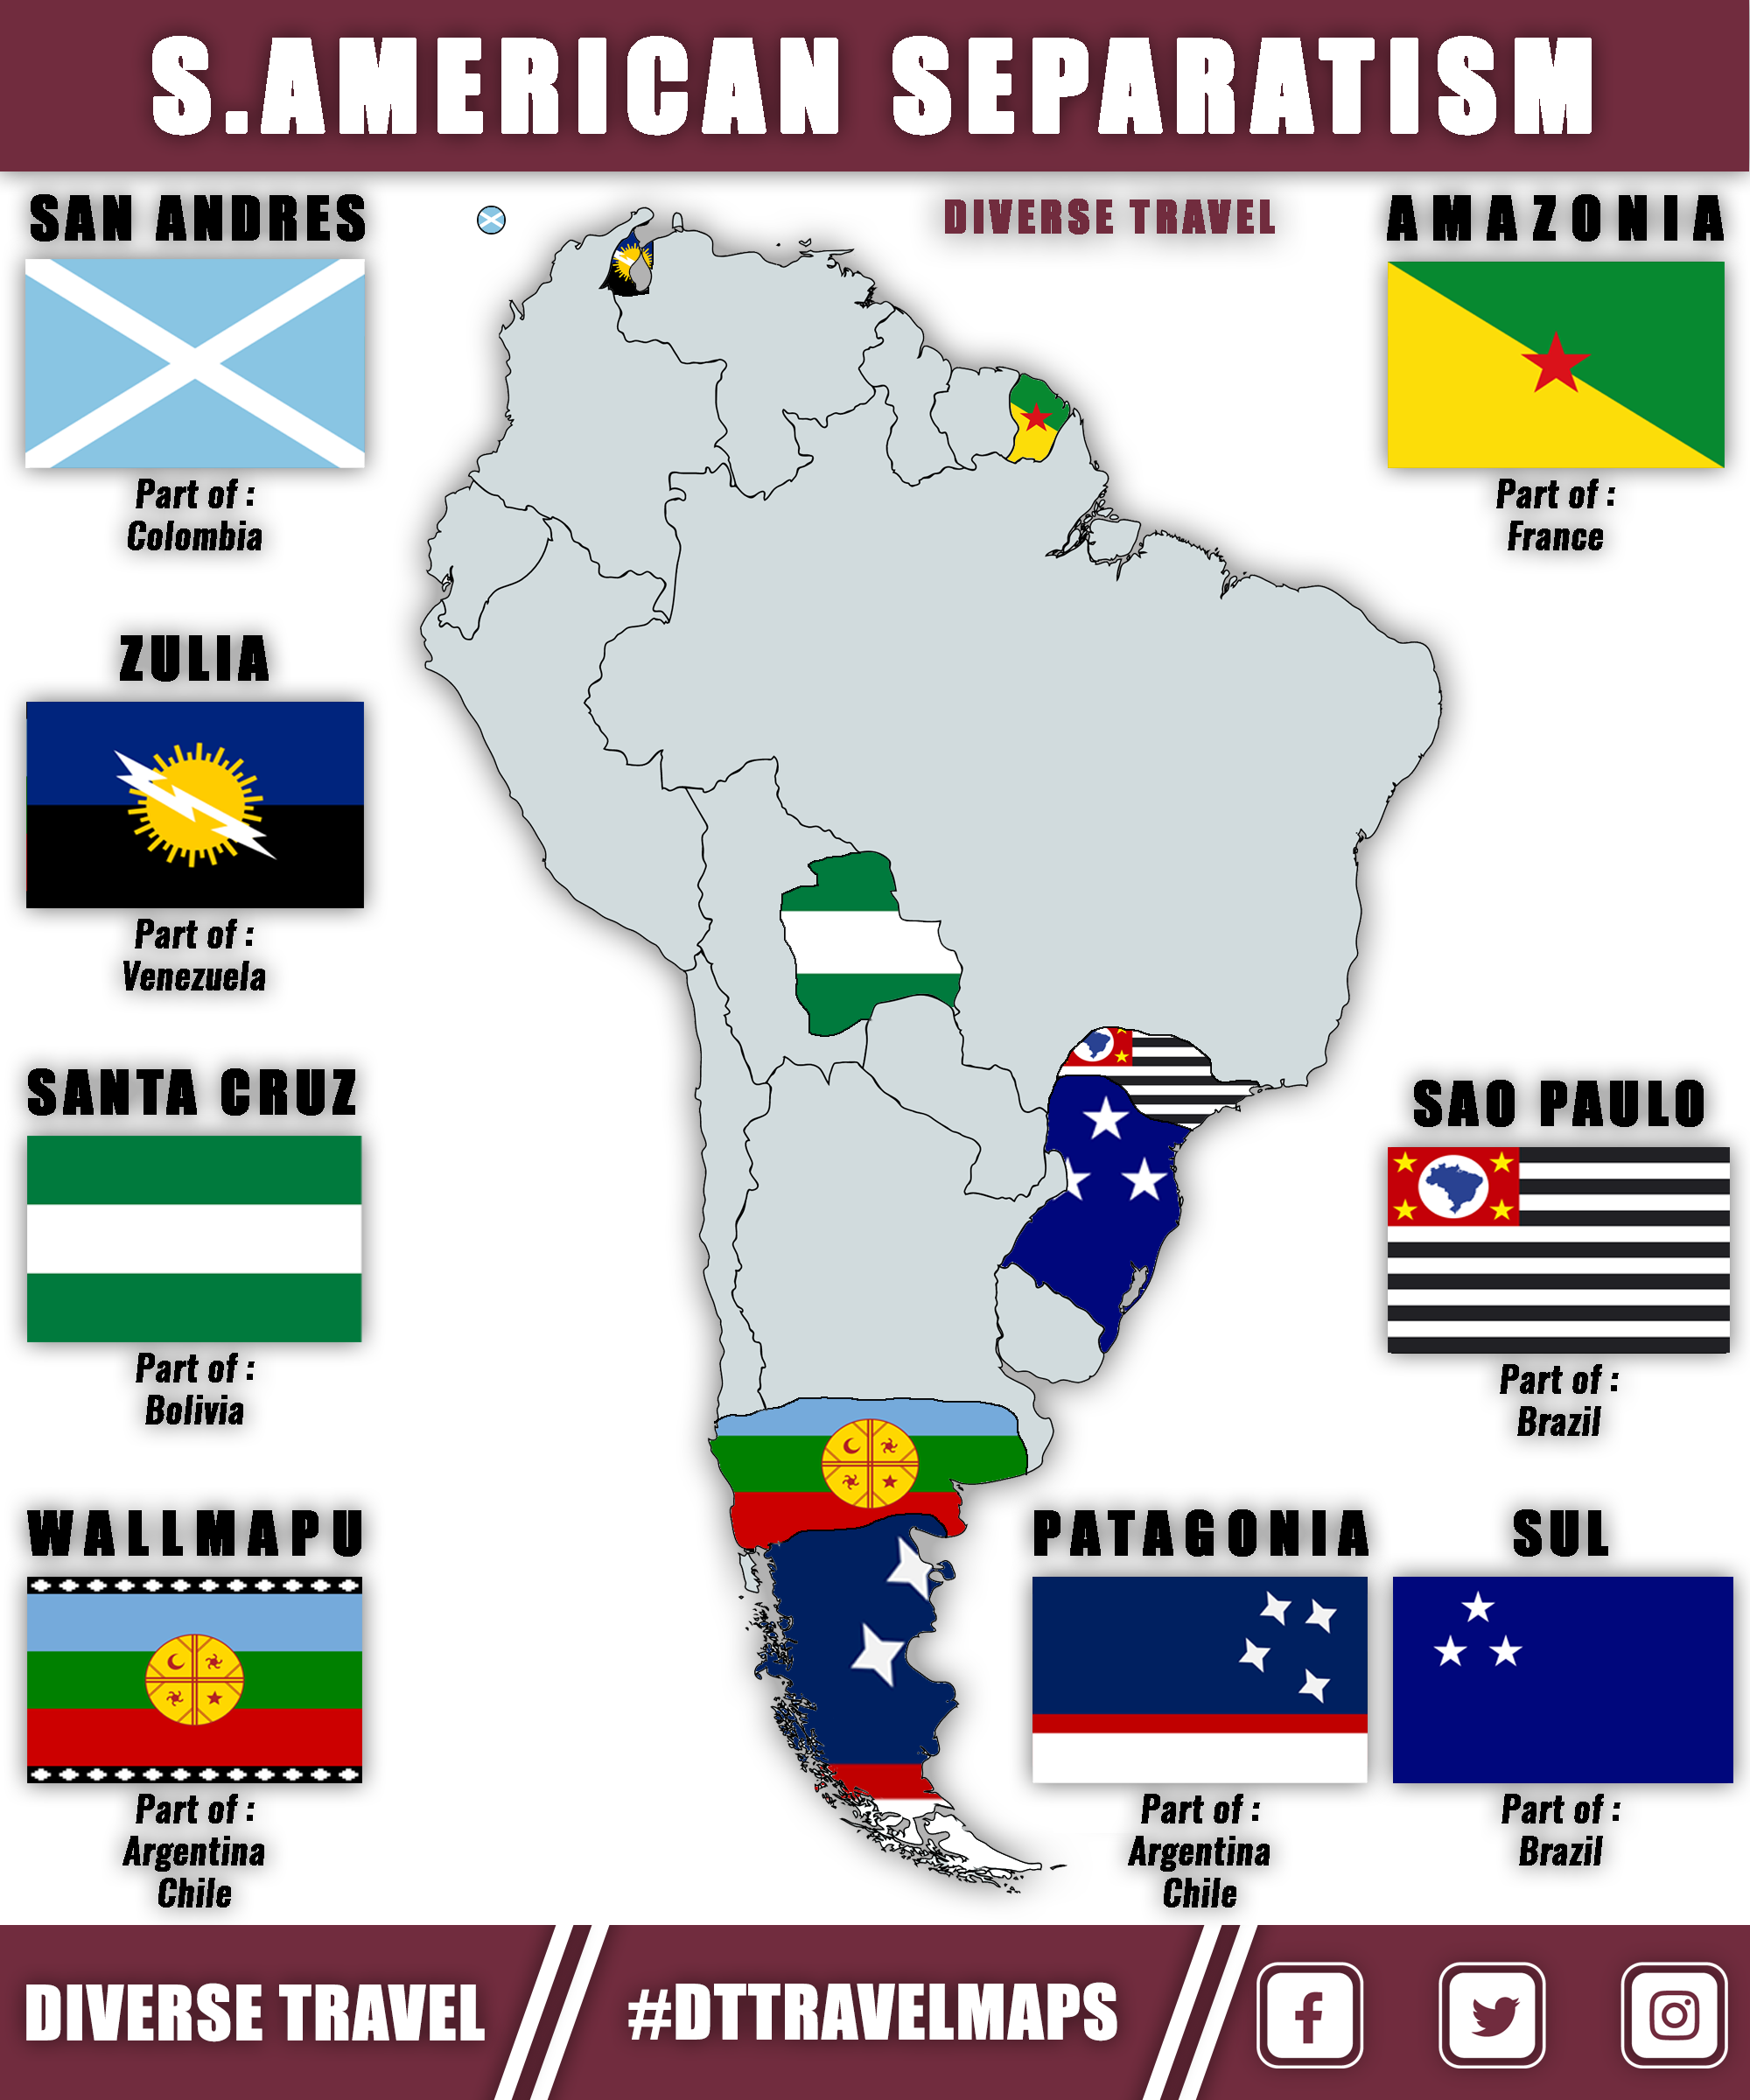 South American Separatist Movements